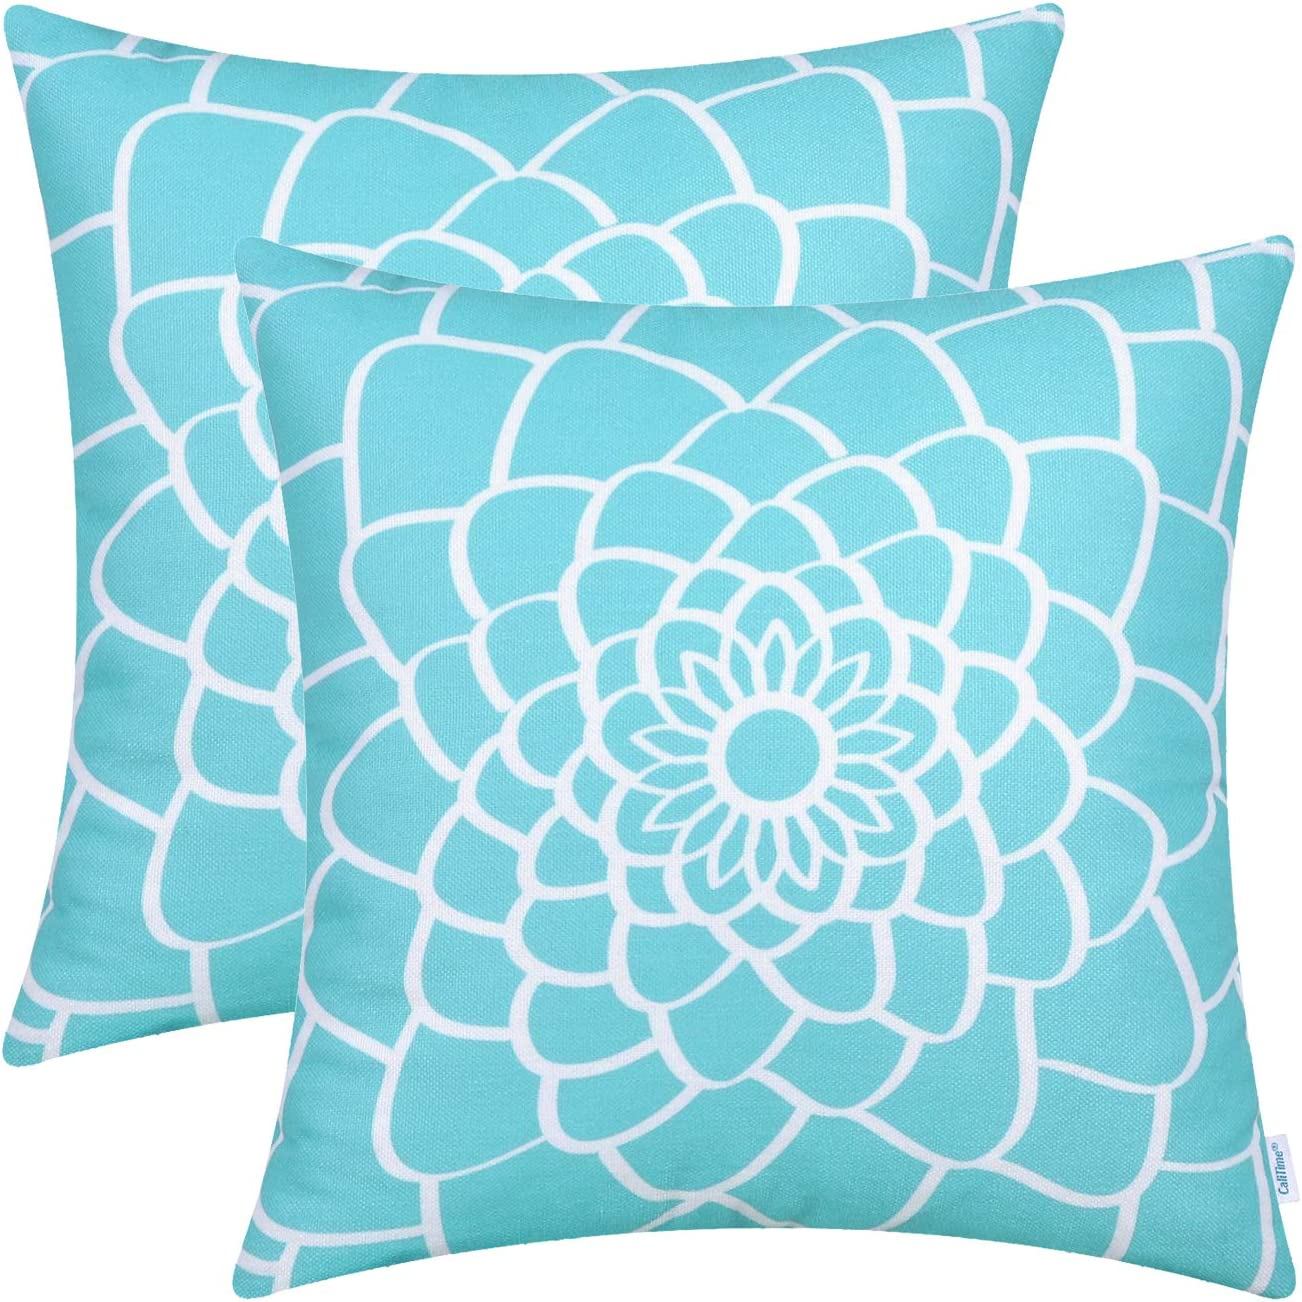 CaliTime Pack of 2 Soft Canvas Throw Pillow Covers Cases for Couch Sofa Home Decor Dahlia Floral Outline Both Sides Print 20 X 20 Inches Turquoise Blue